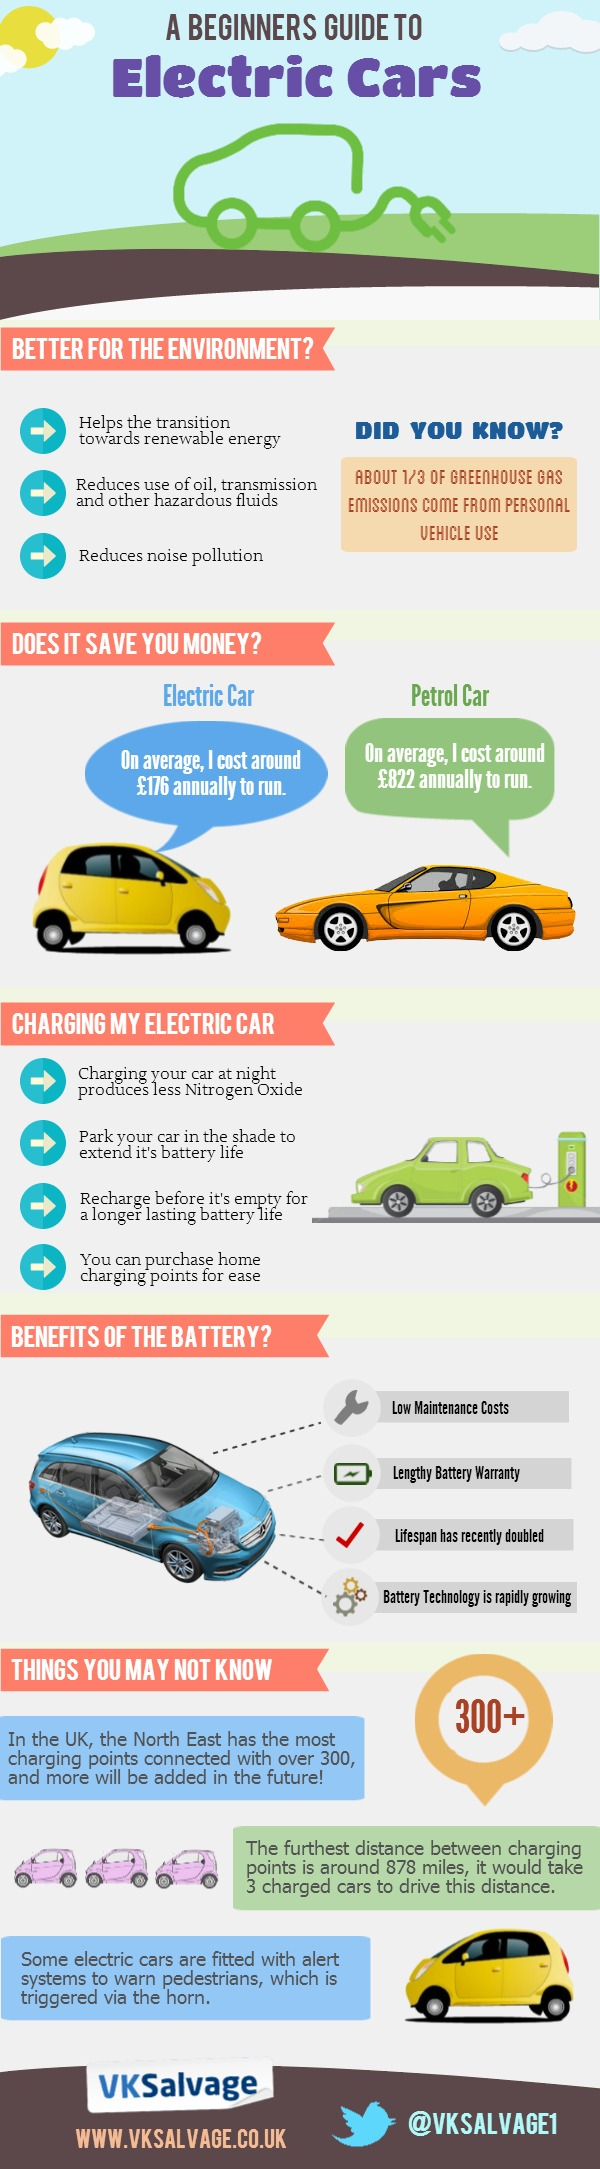 a-beginners-guide-to-electric-cars-thumbnail_53ac335252429